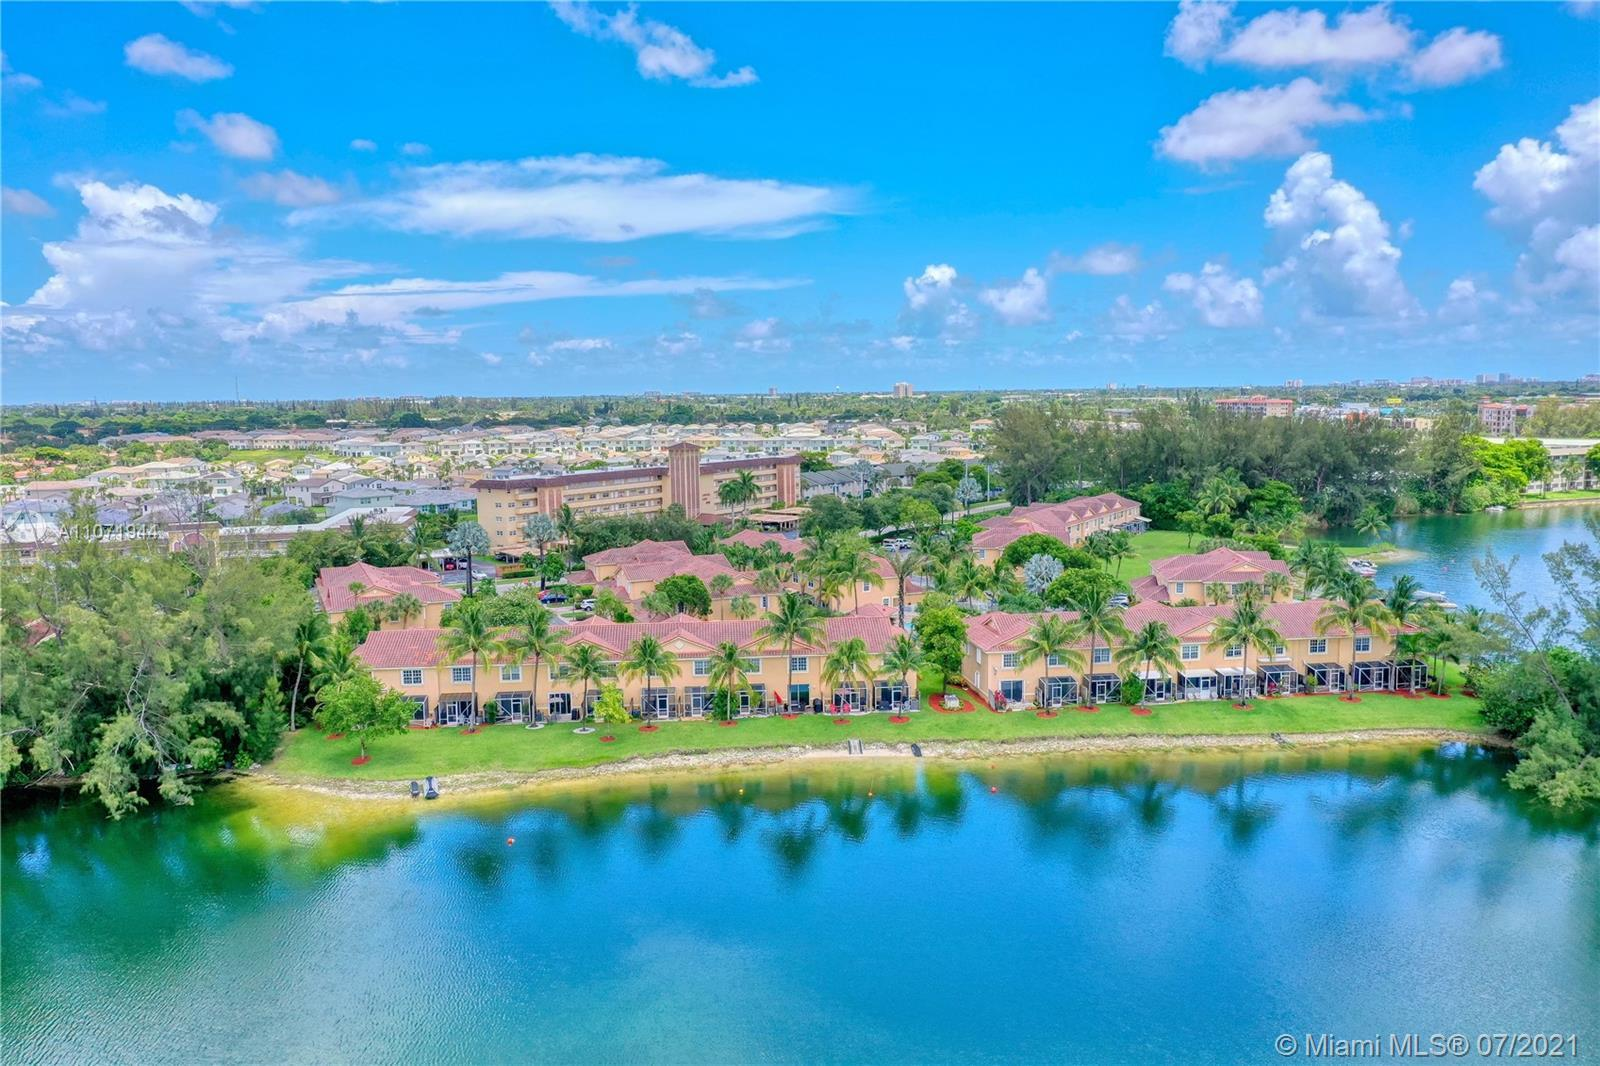 This Lakefront 3 Bedroom, 2 and a Half Bathroom Townhome with a 1 car garage built in 2003 is ready